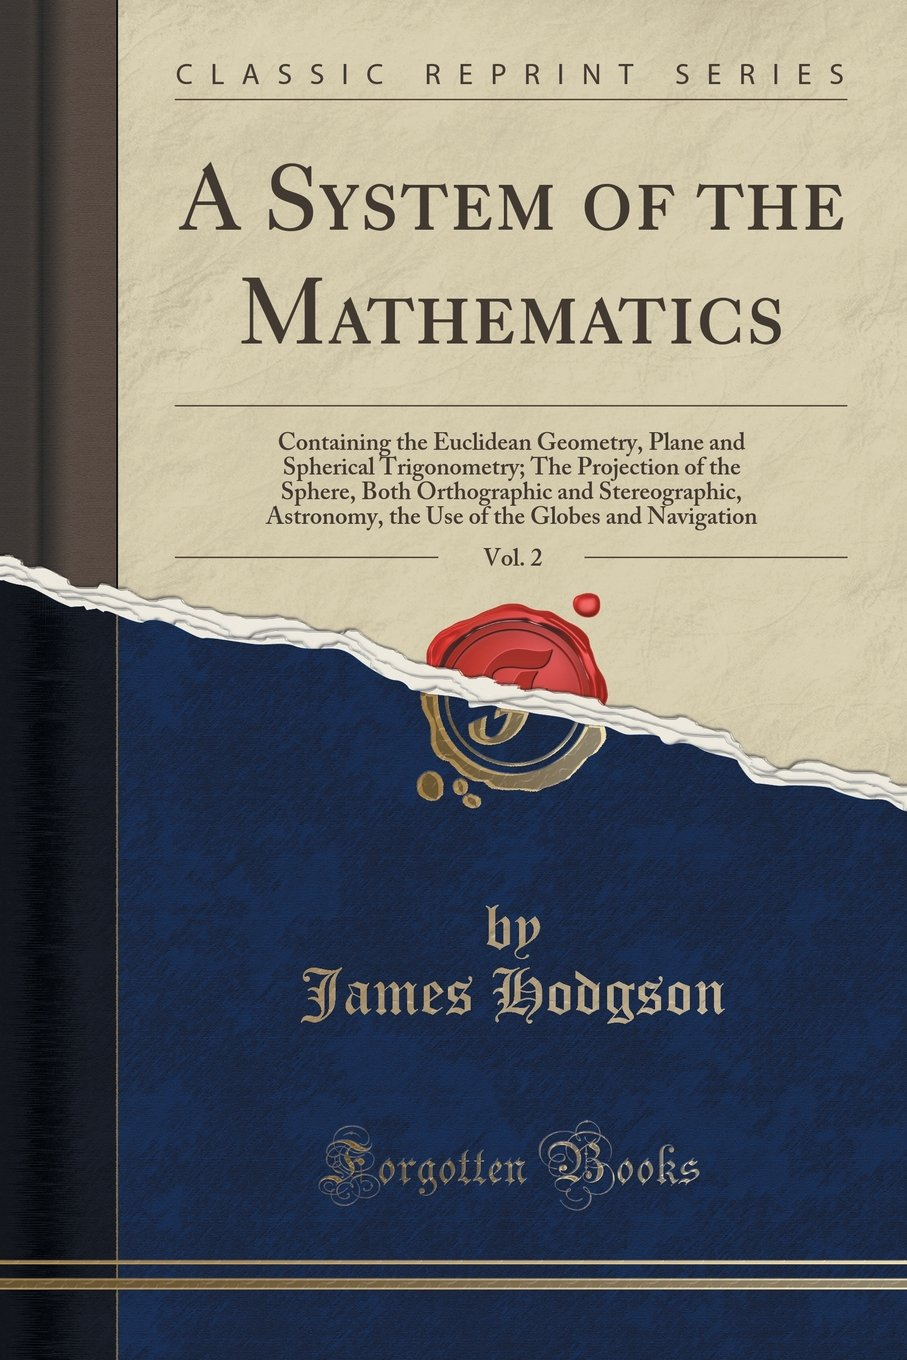 Read Online A System of the Mathematics, Vol. 2: Containing the Euclidean Geometry, Plane and Spherical Trigonometry; The Projection of the Sphere, Both ... the Globes and Navigation (Classic Reprint) pdf